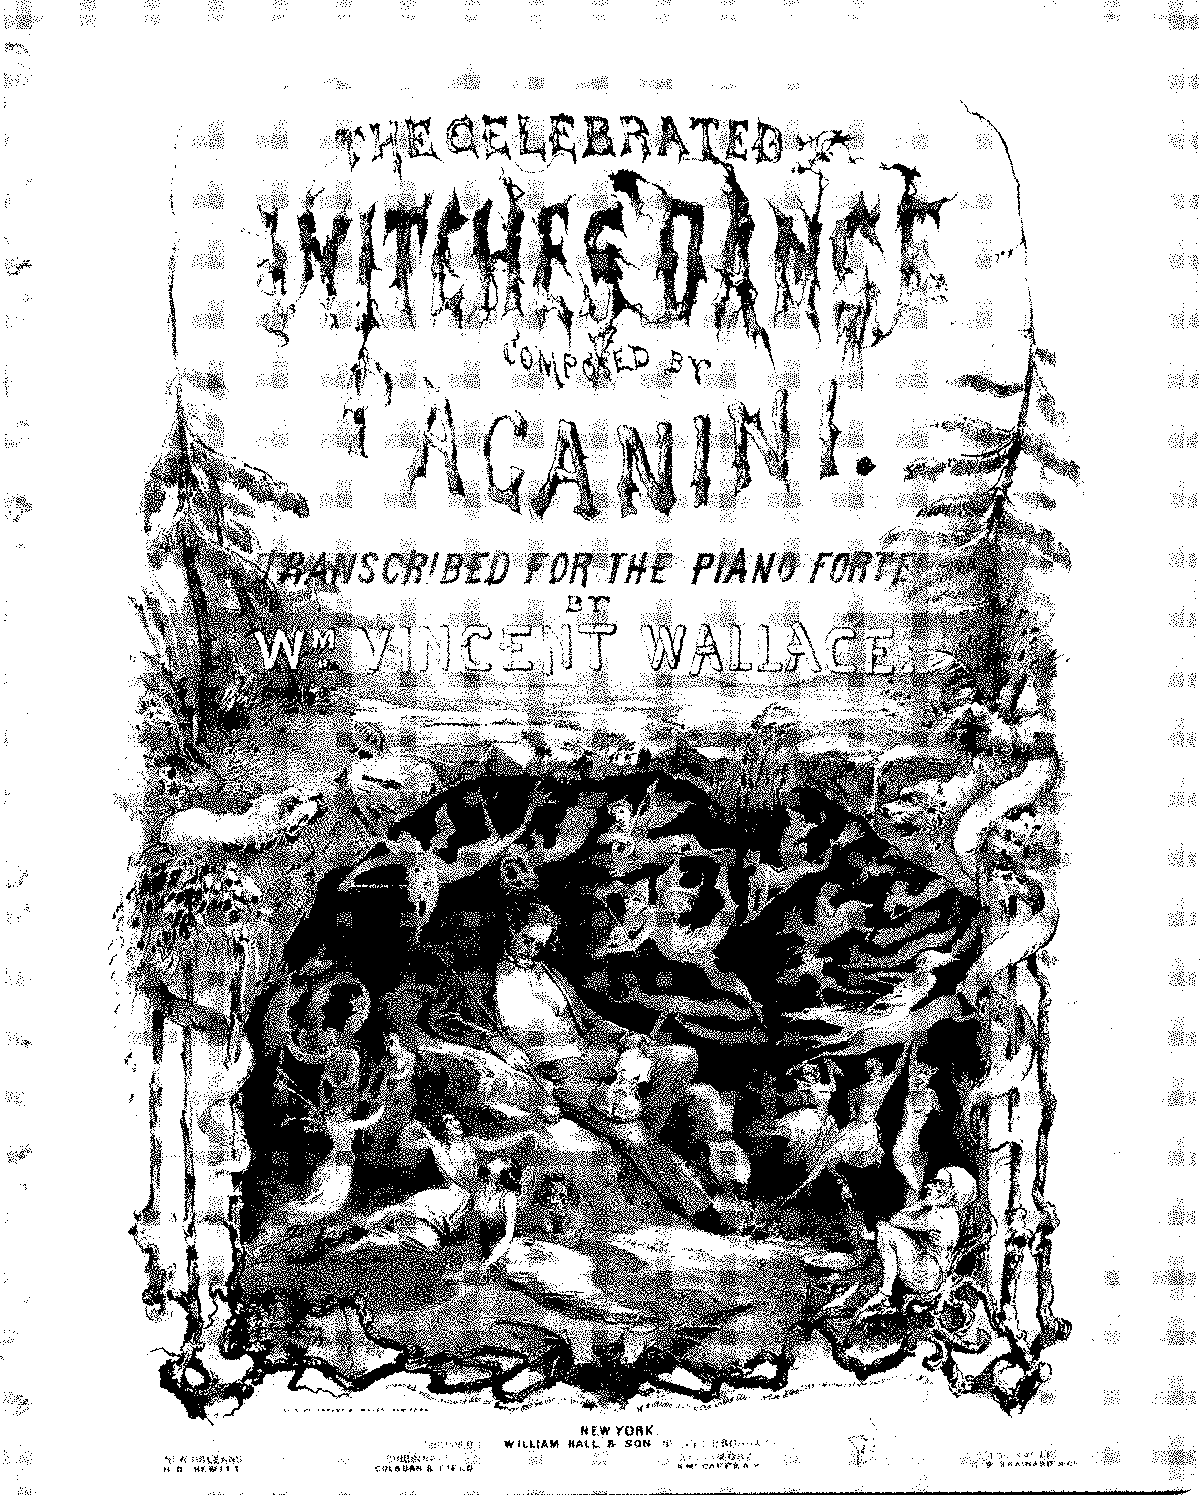 Paganini Witches Dance Pno.pdf